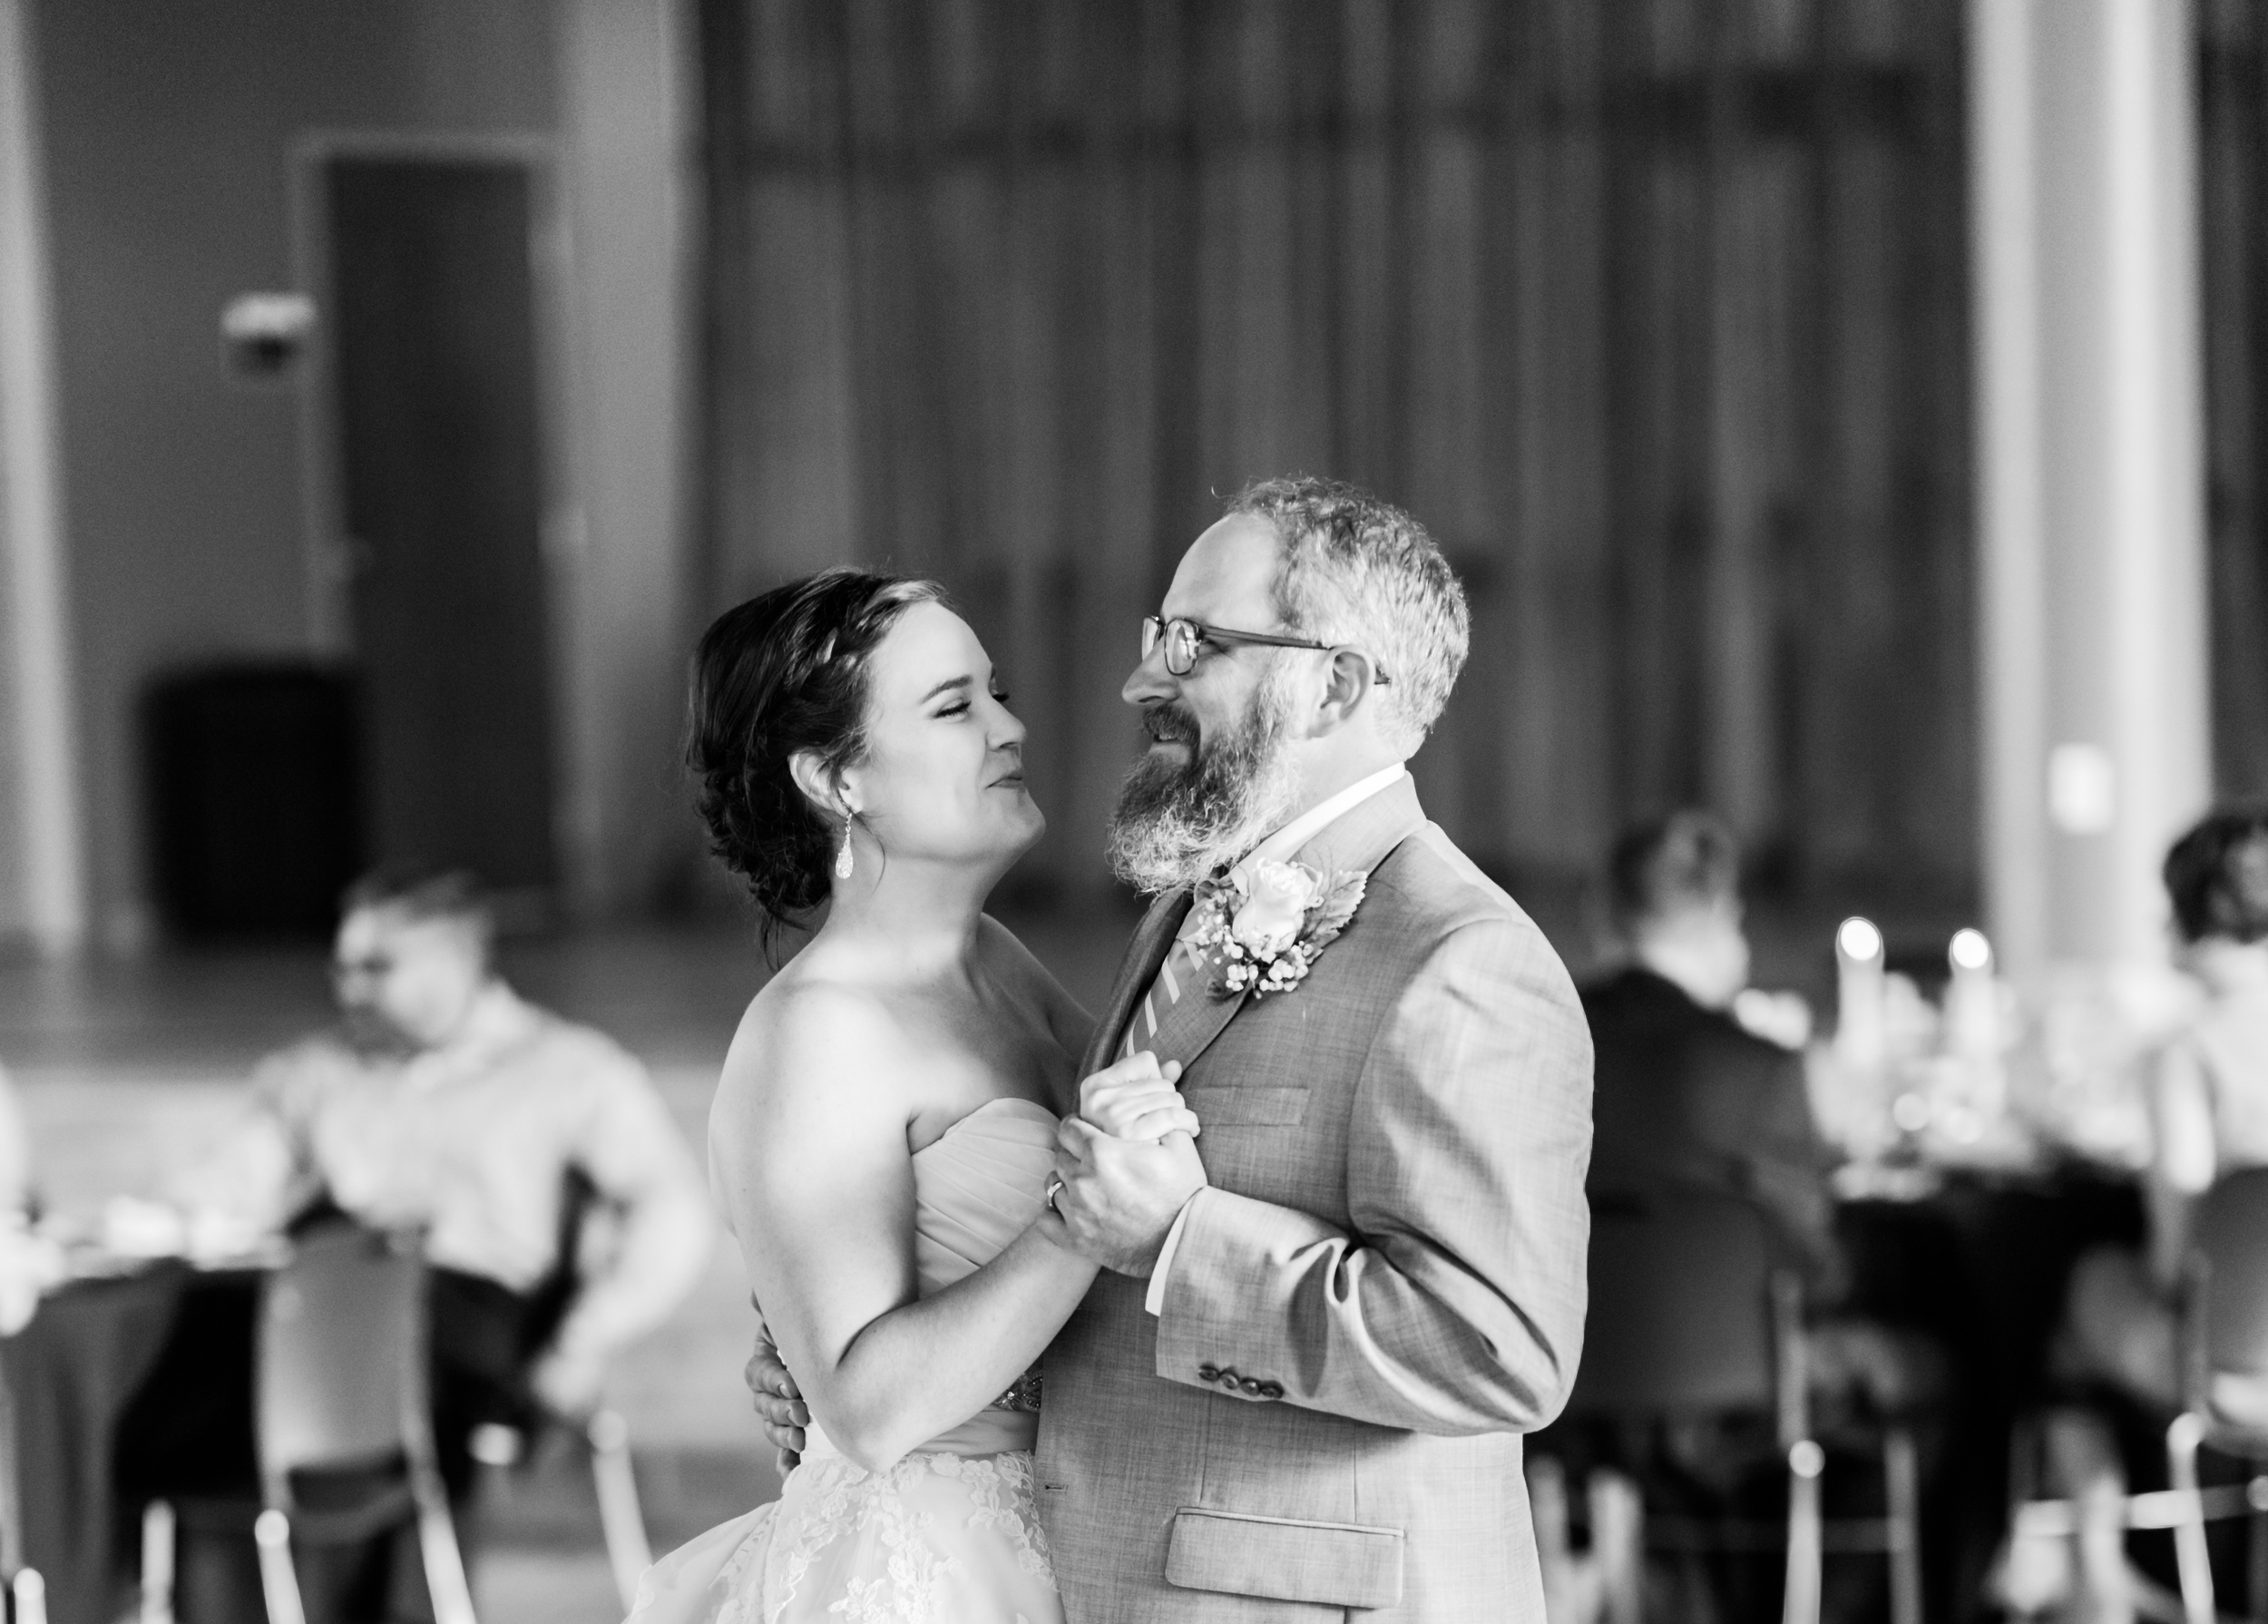 06-04-16_Ramsey_firstdance-5.jpg